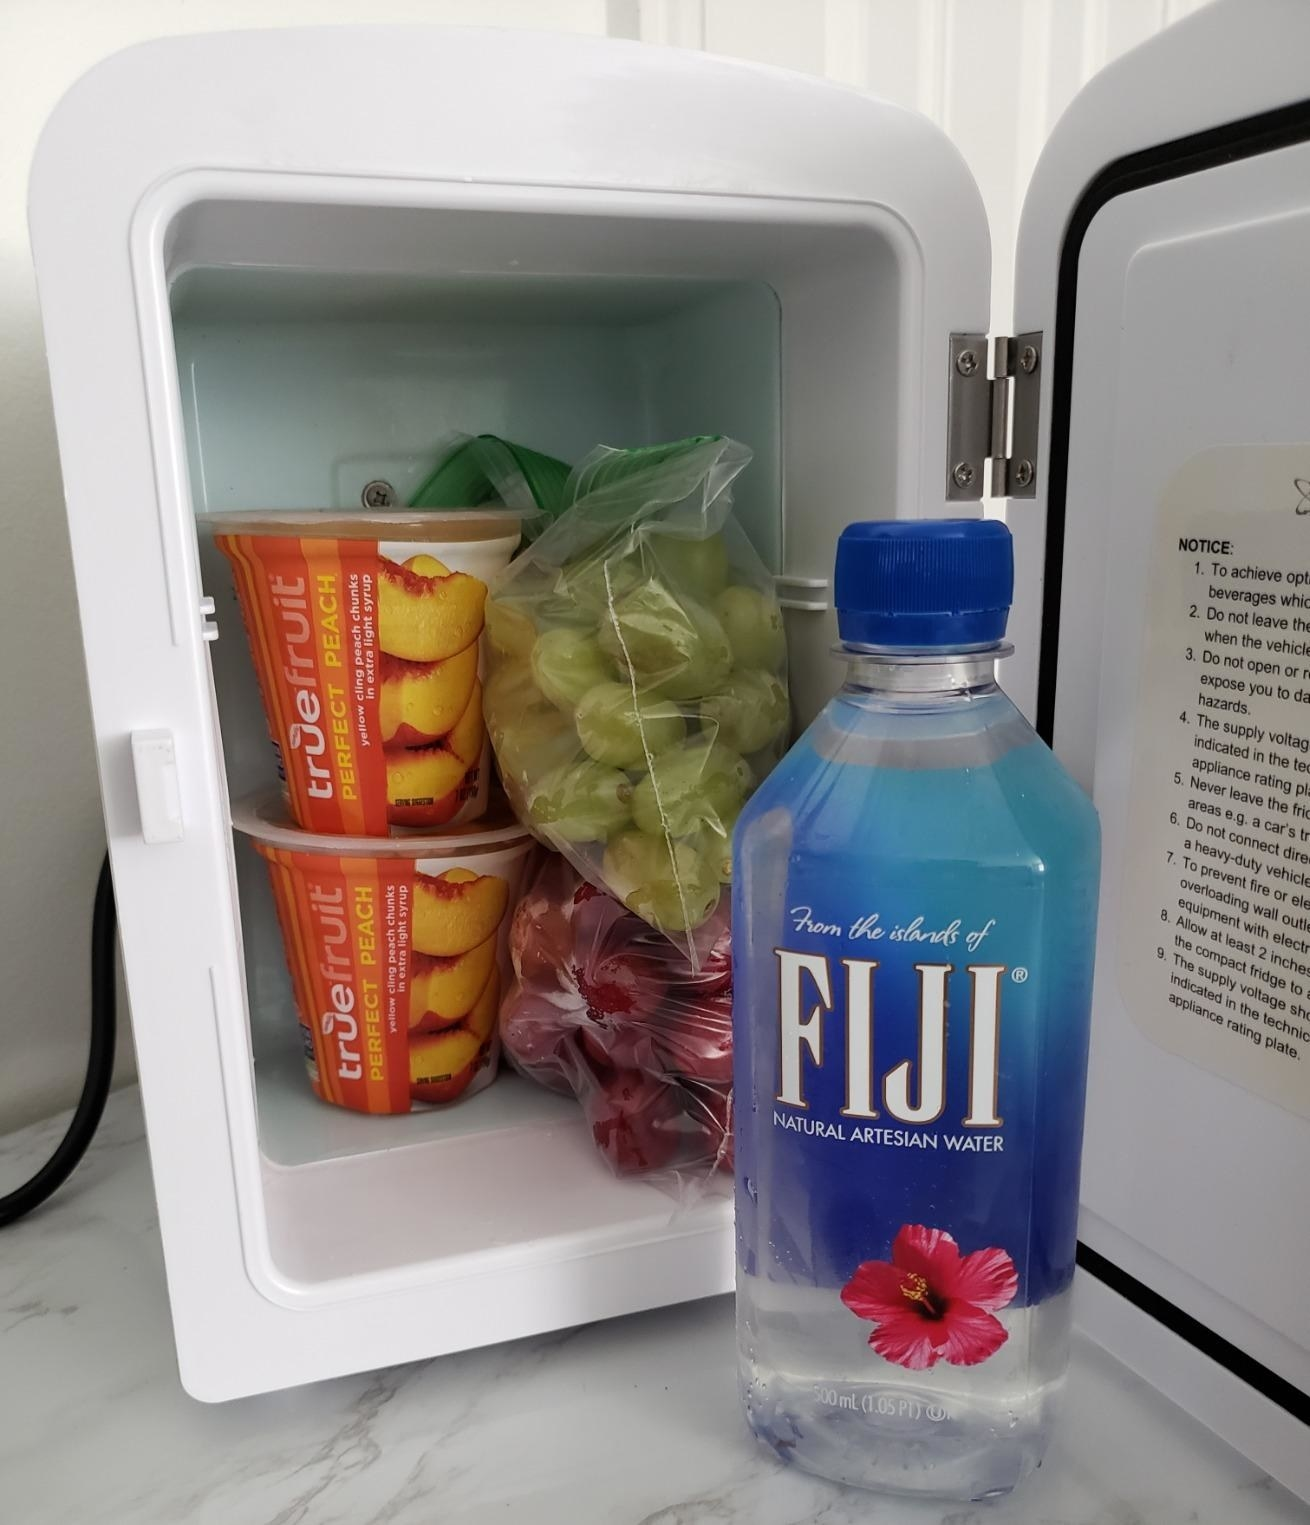 water and some snacks in the fridge